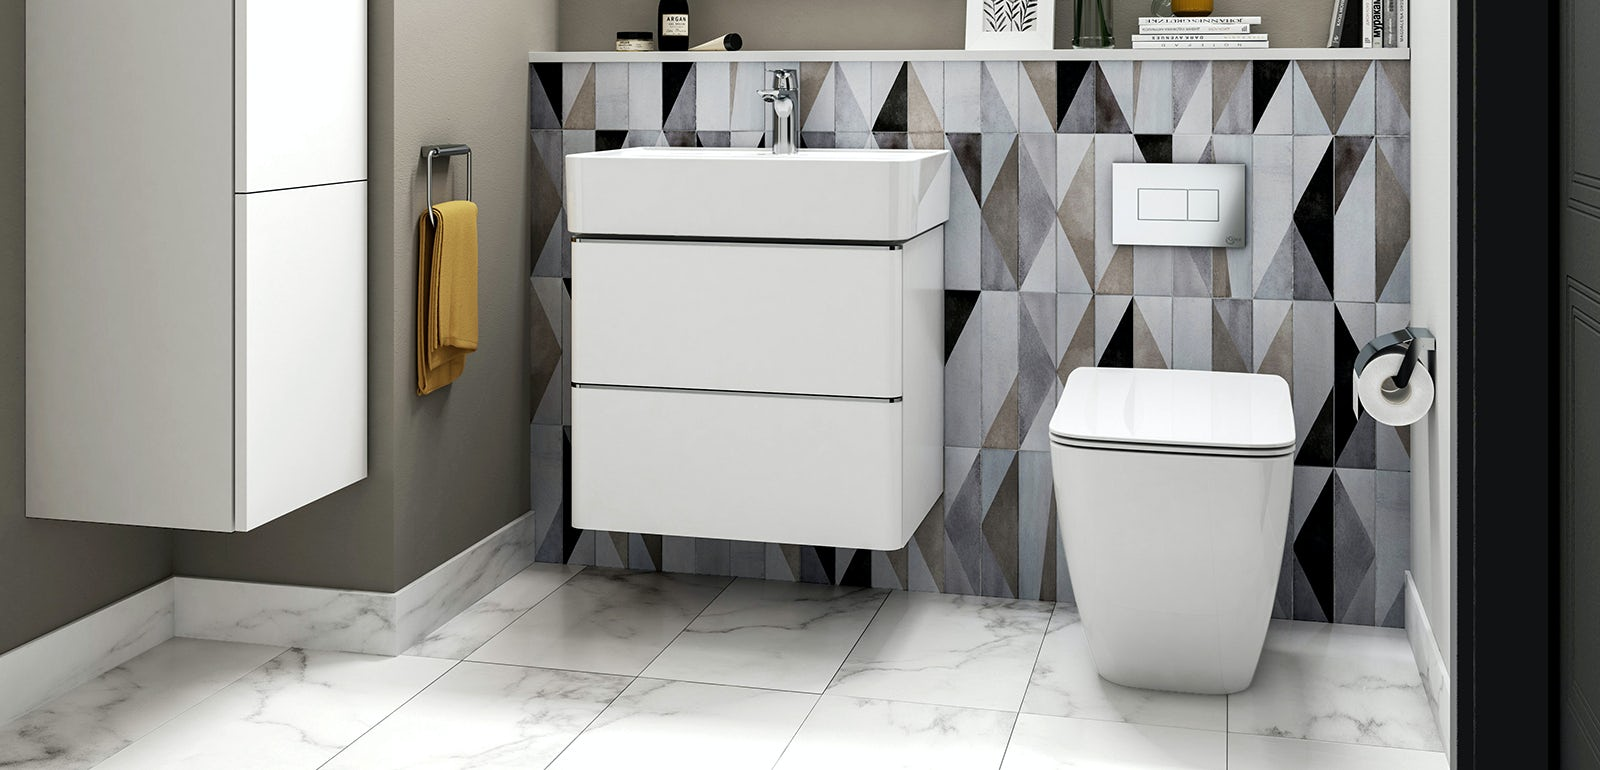 Ideal Standard: Top tips for adapting a modern bathroom to fit all lifestyles